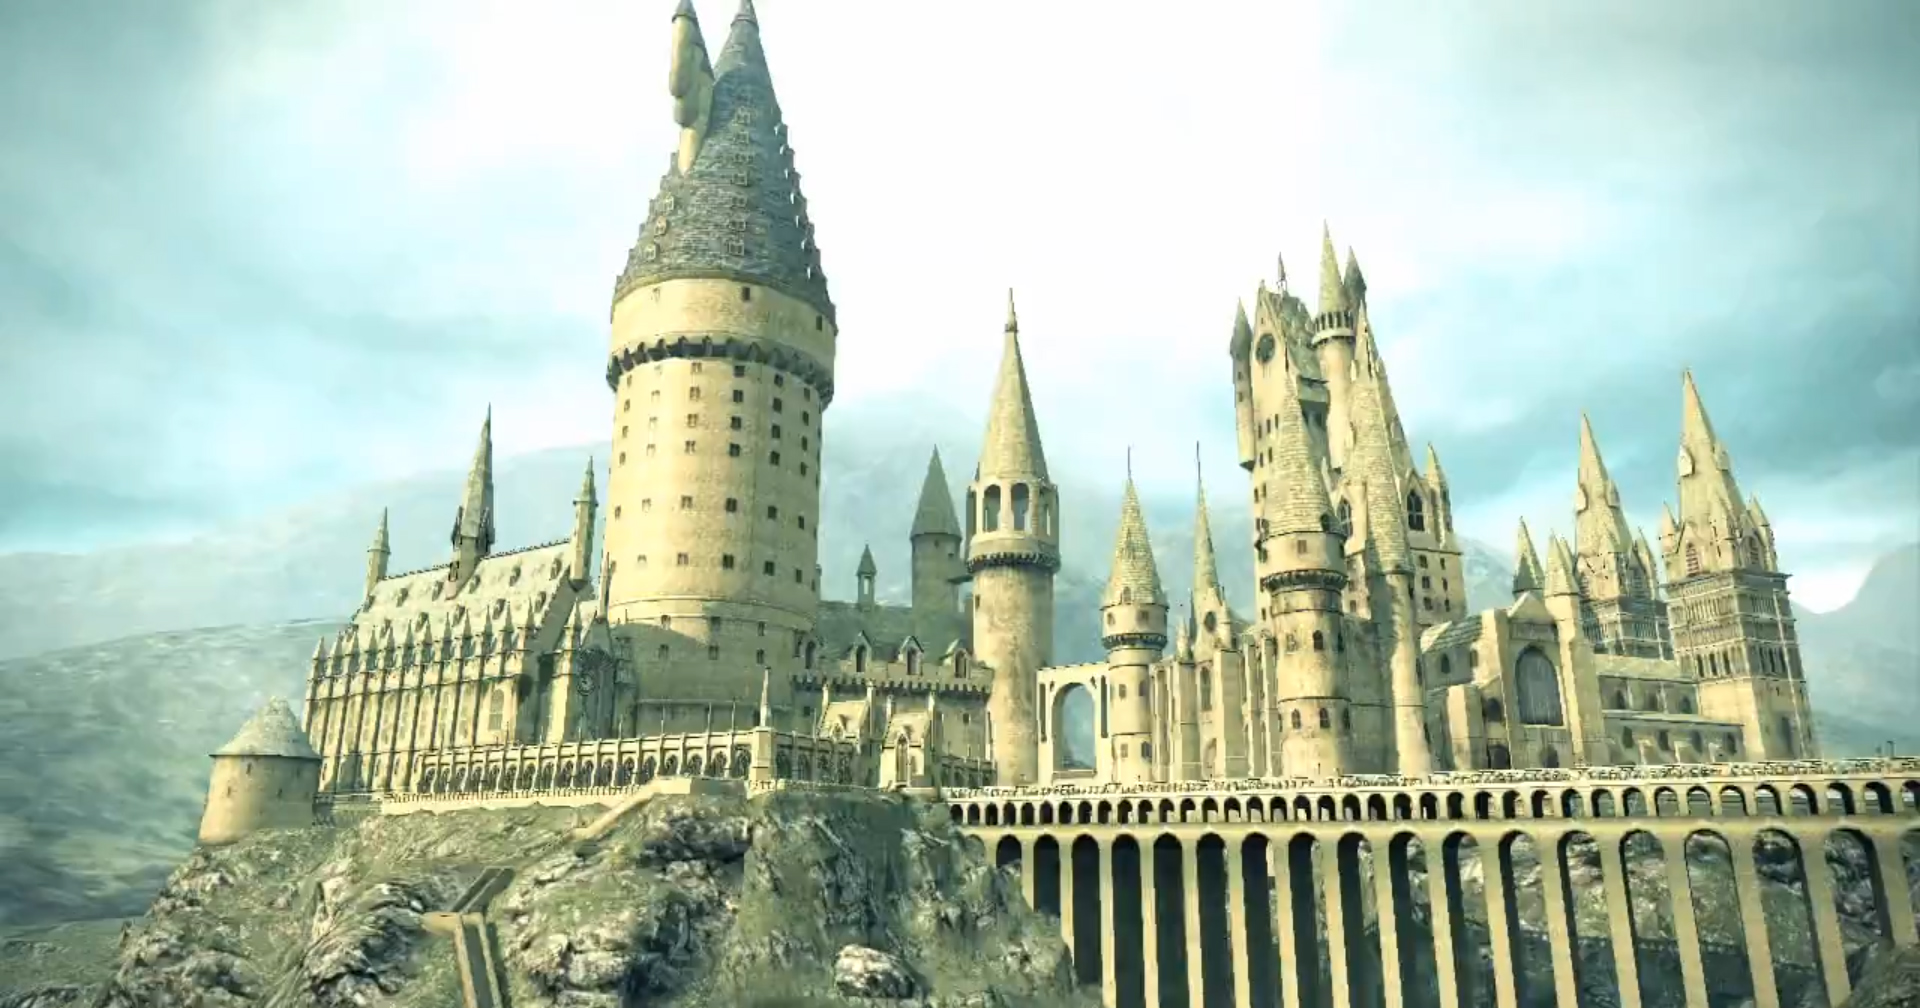 Want to enroll in The Hogwarts School of Witchcraft & Wizardry? Now you can!